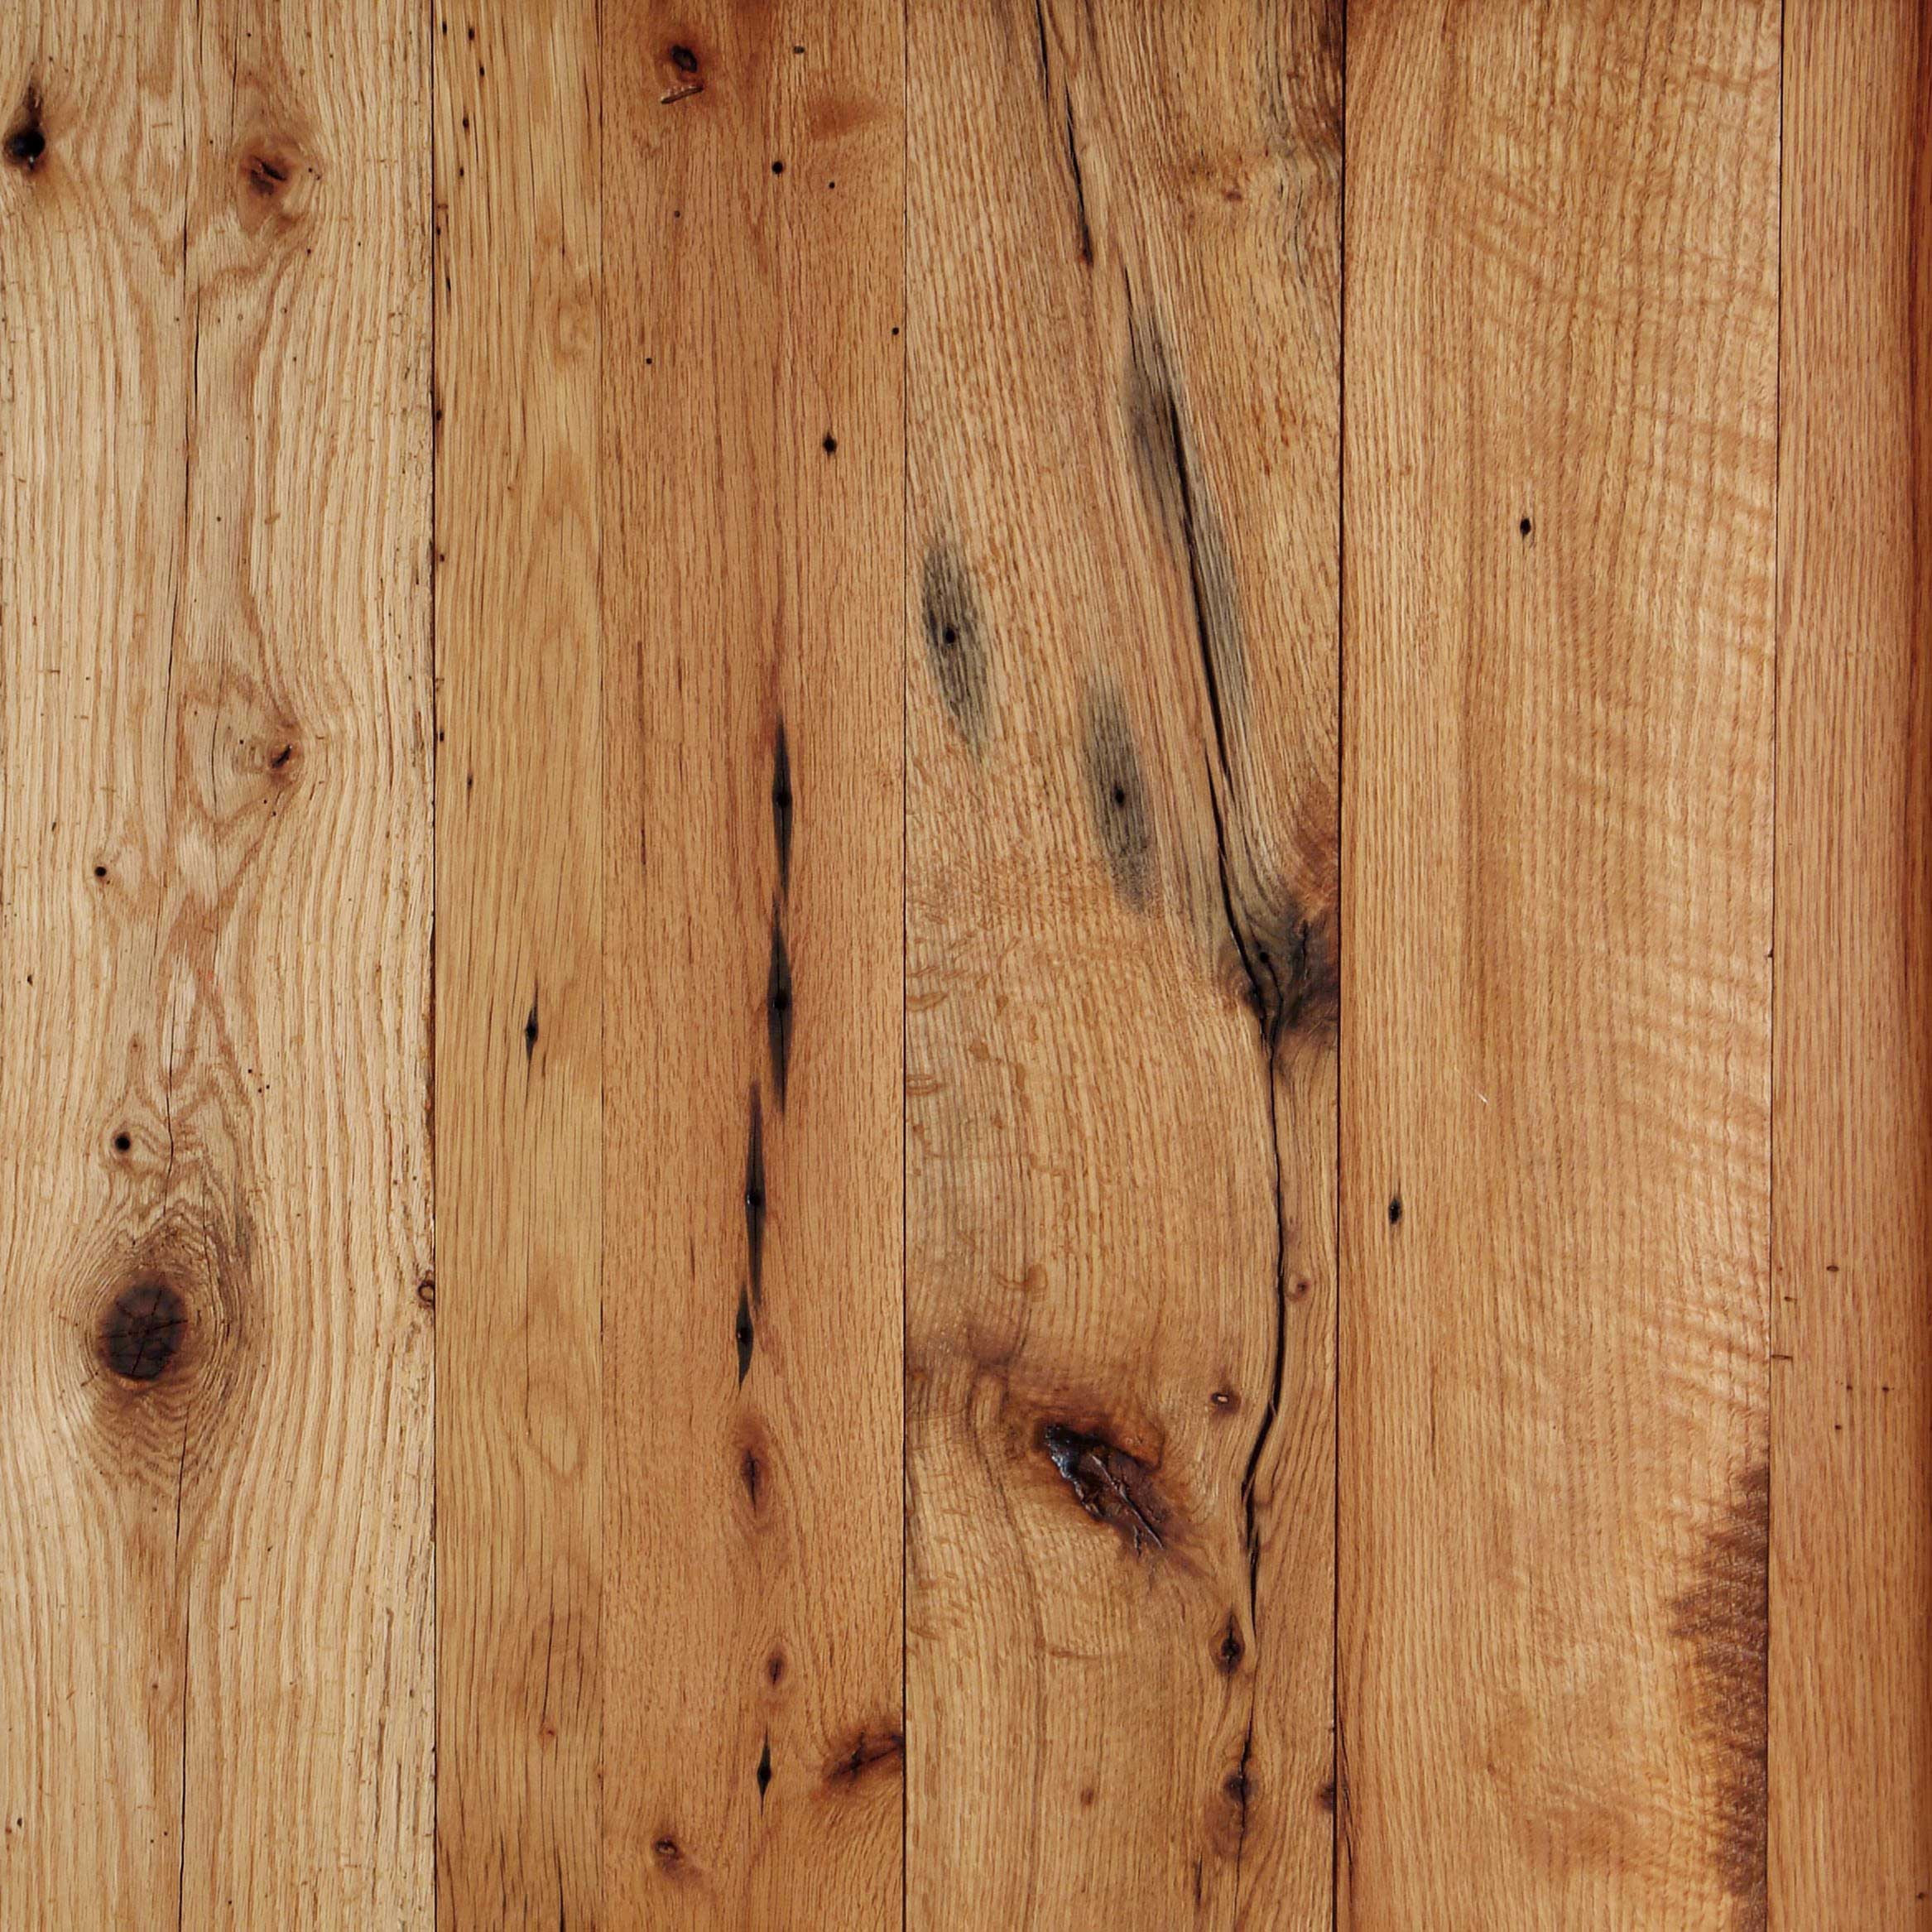 hardwood flooring ideas pinterest of longleaf lumber reclaimed red white oak wood with regard to reclaimed salvaged antique red oak flooring wide boards knots